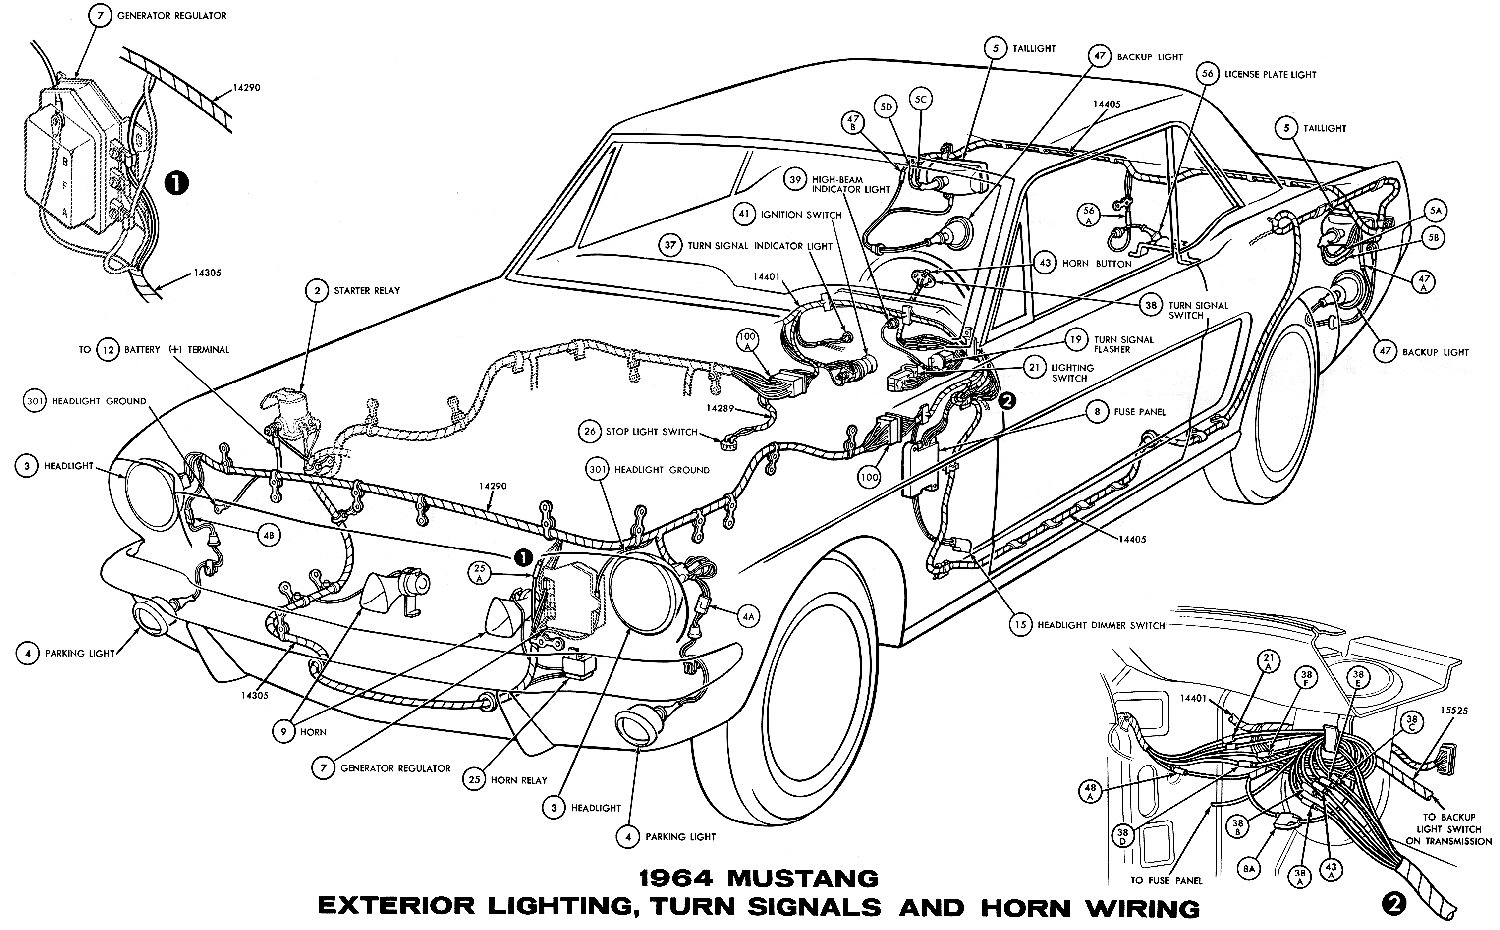 1964 mustang wiring diagrams average joe restoration rh averagejoerestoration com